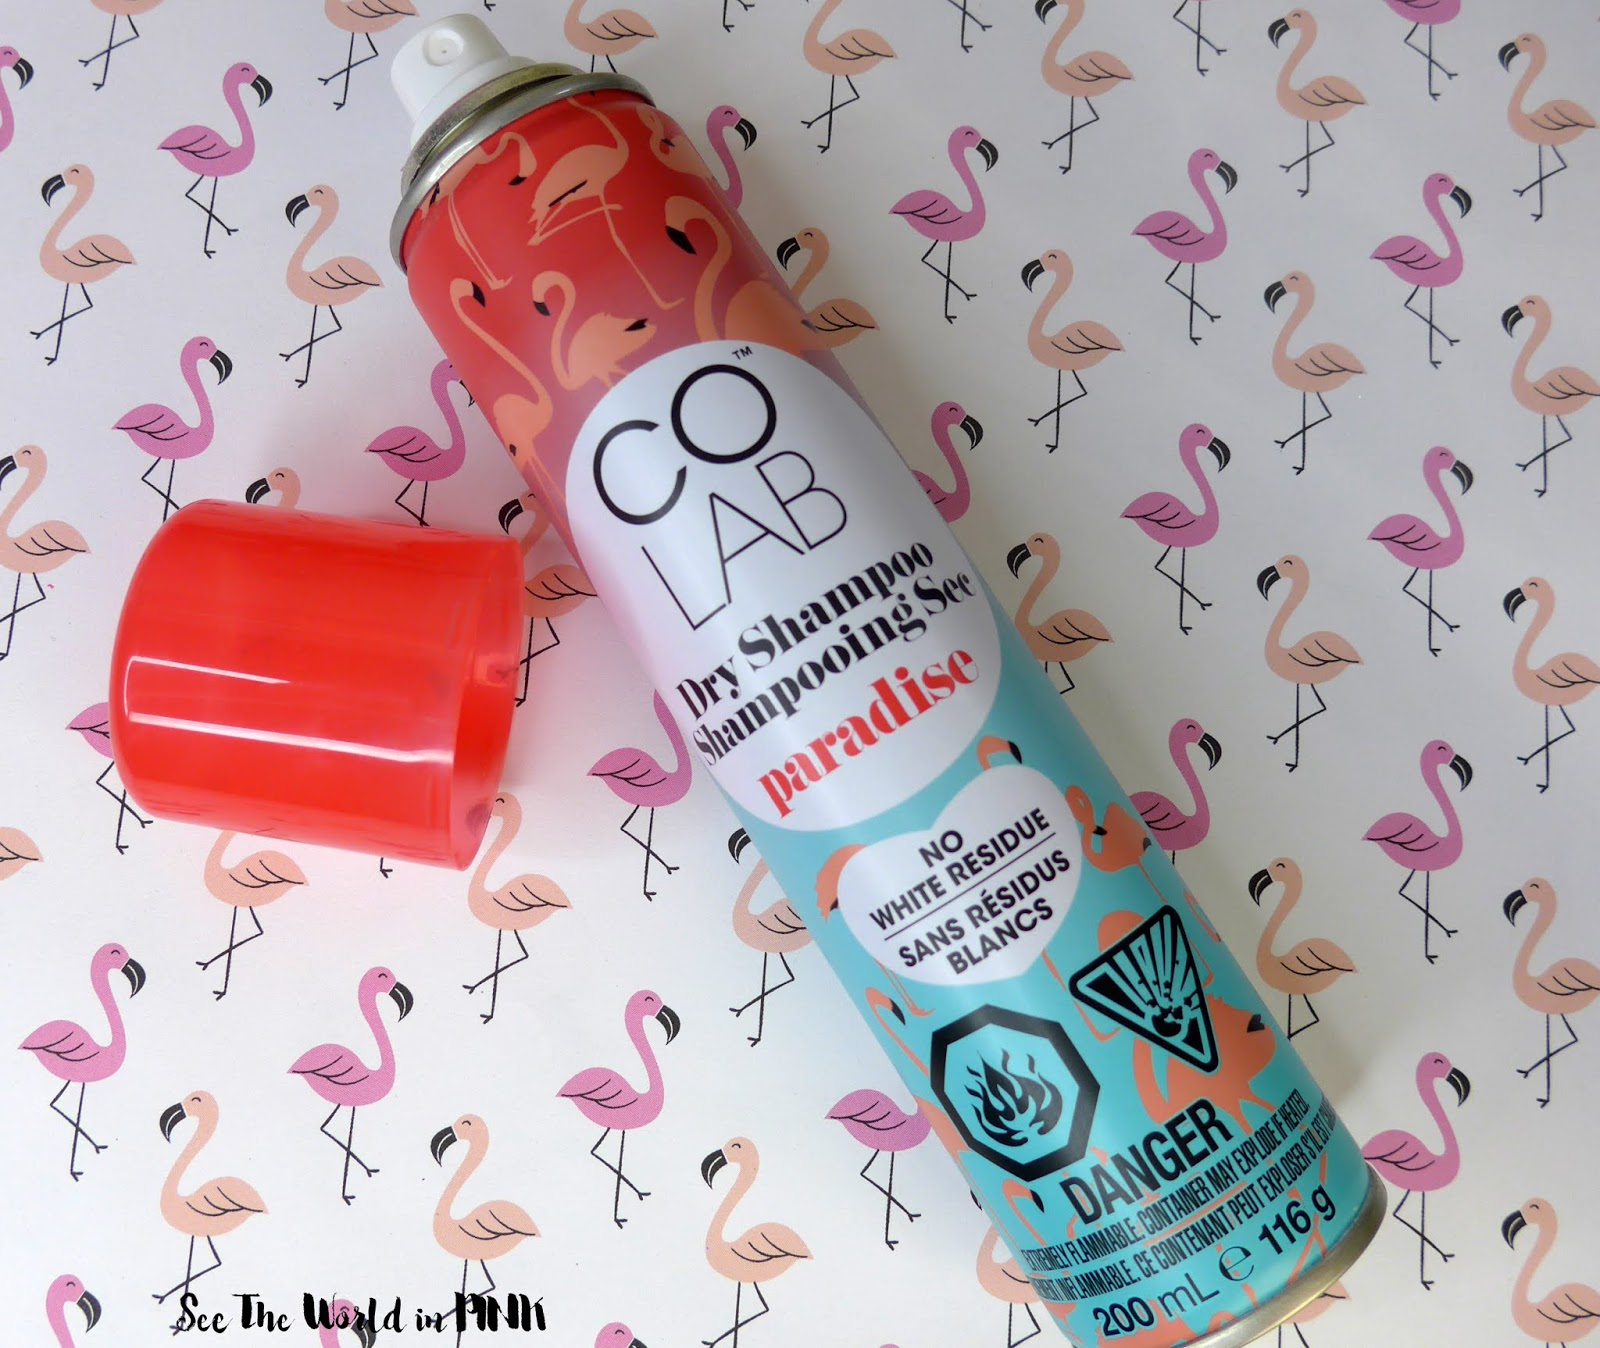 Colab Dry Shampoo - Paradise Scented and Extreme Volume!